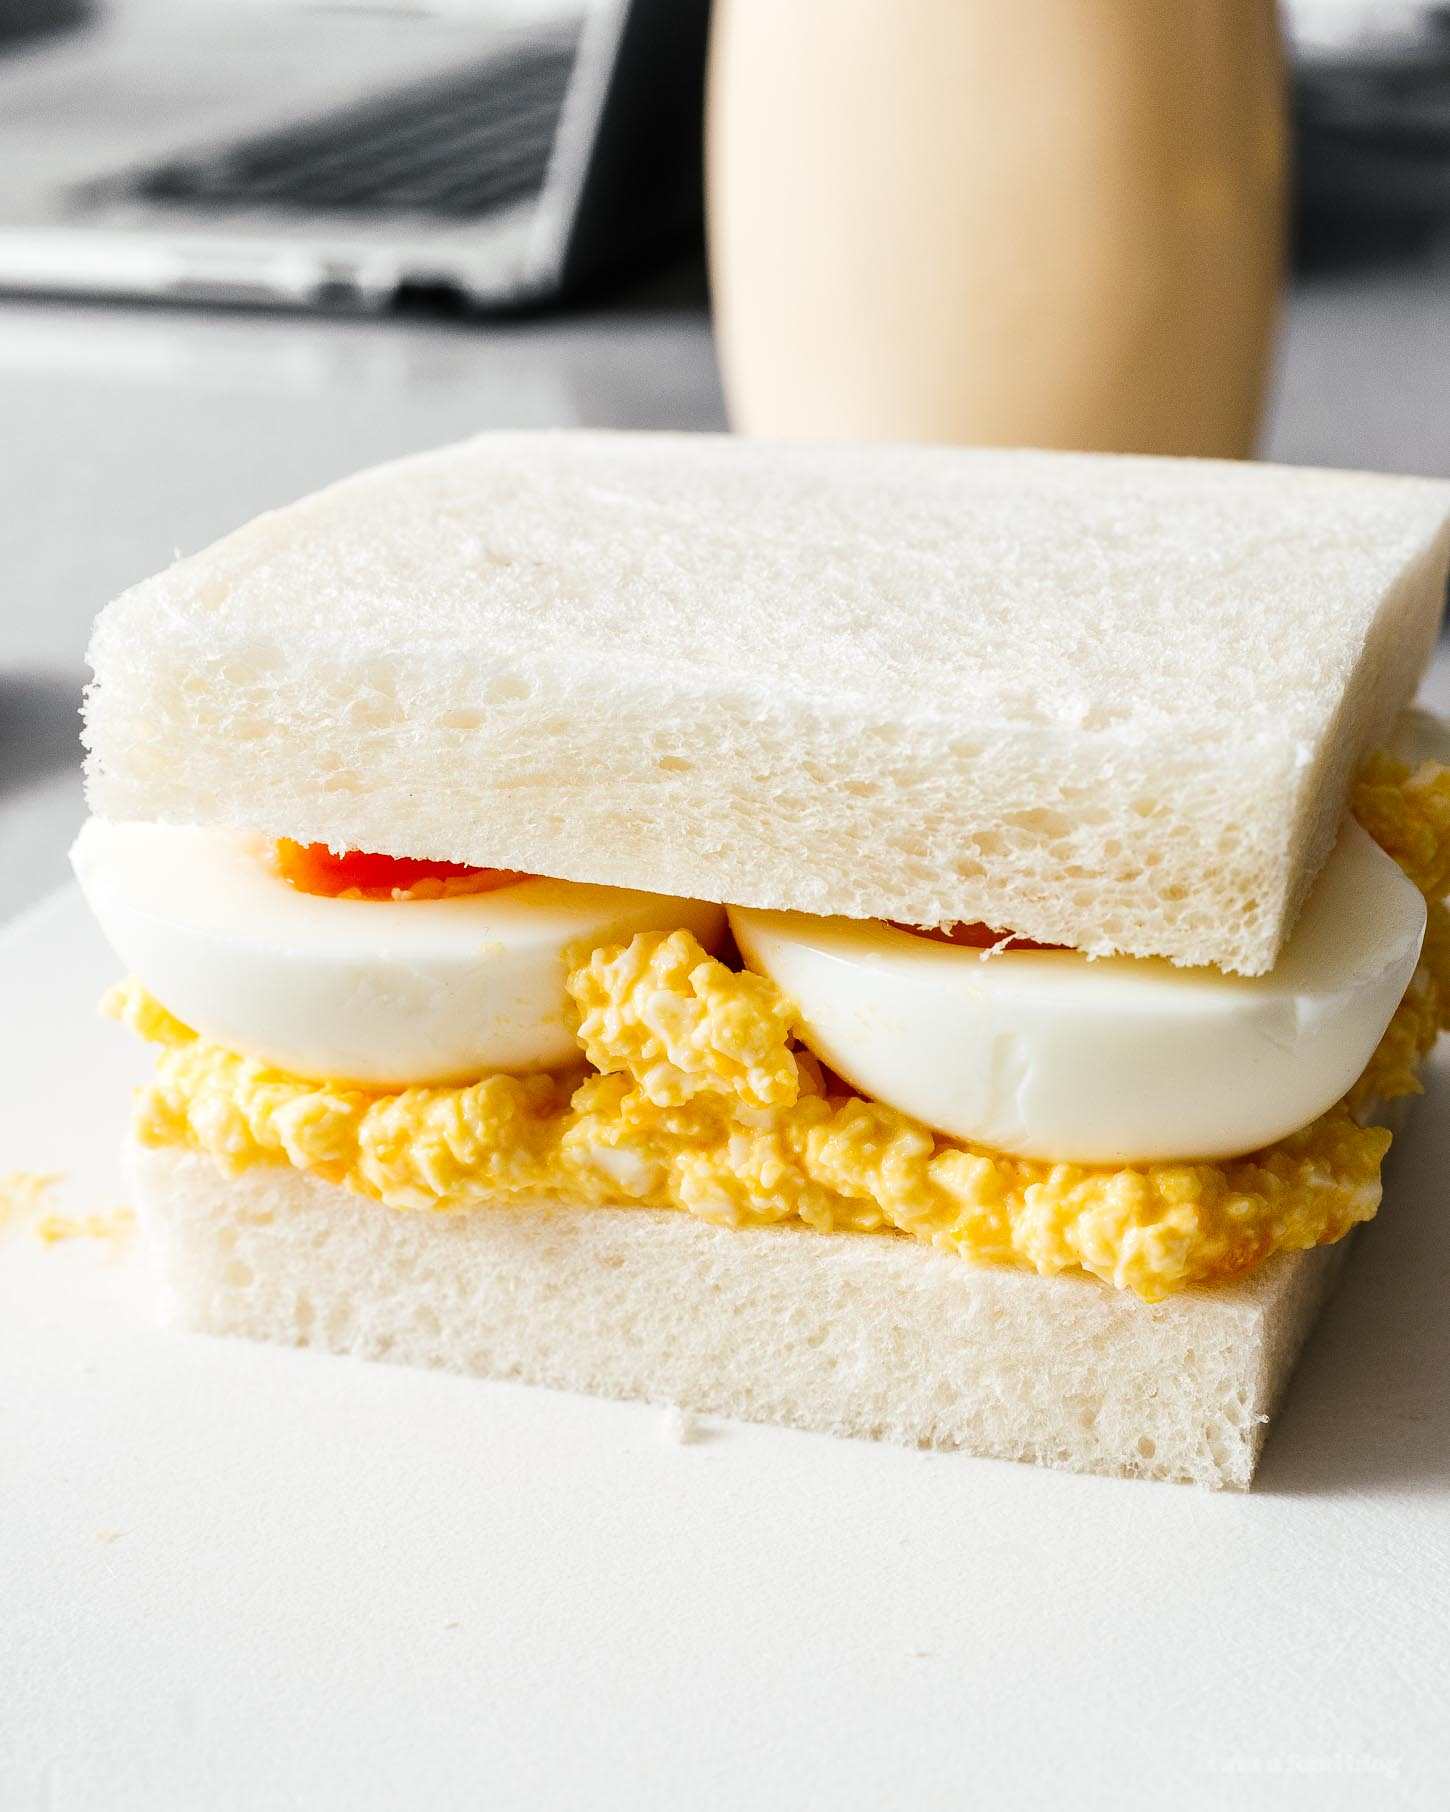 Japanese-style egg salad sandwiches! Do you love egg salad sandwiches but want a twist? Creamy kewpie mayo and jammy eggs makes this sandwich a winner. Just like the sandwiches you had on vacation in Japan but better ;) #sandwiches #eggsalad #japanese #japanesefood #recipes #recipeoftheday #eggs